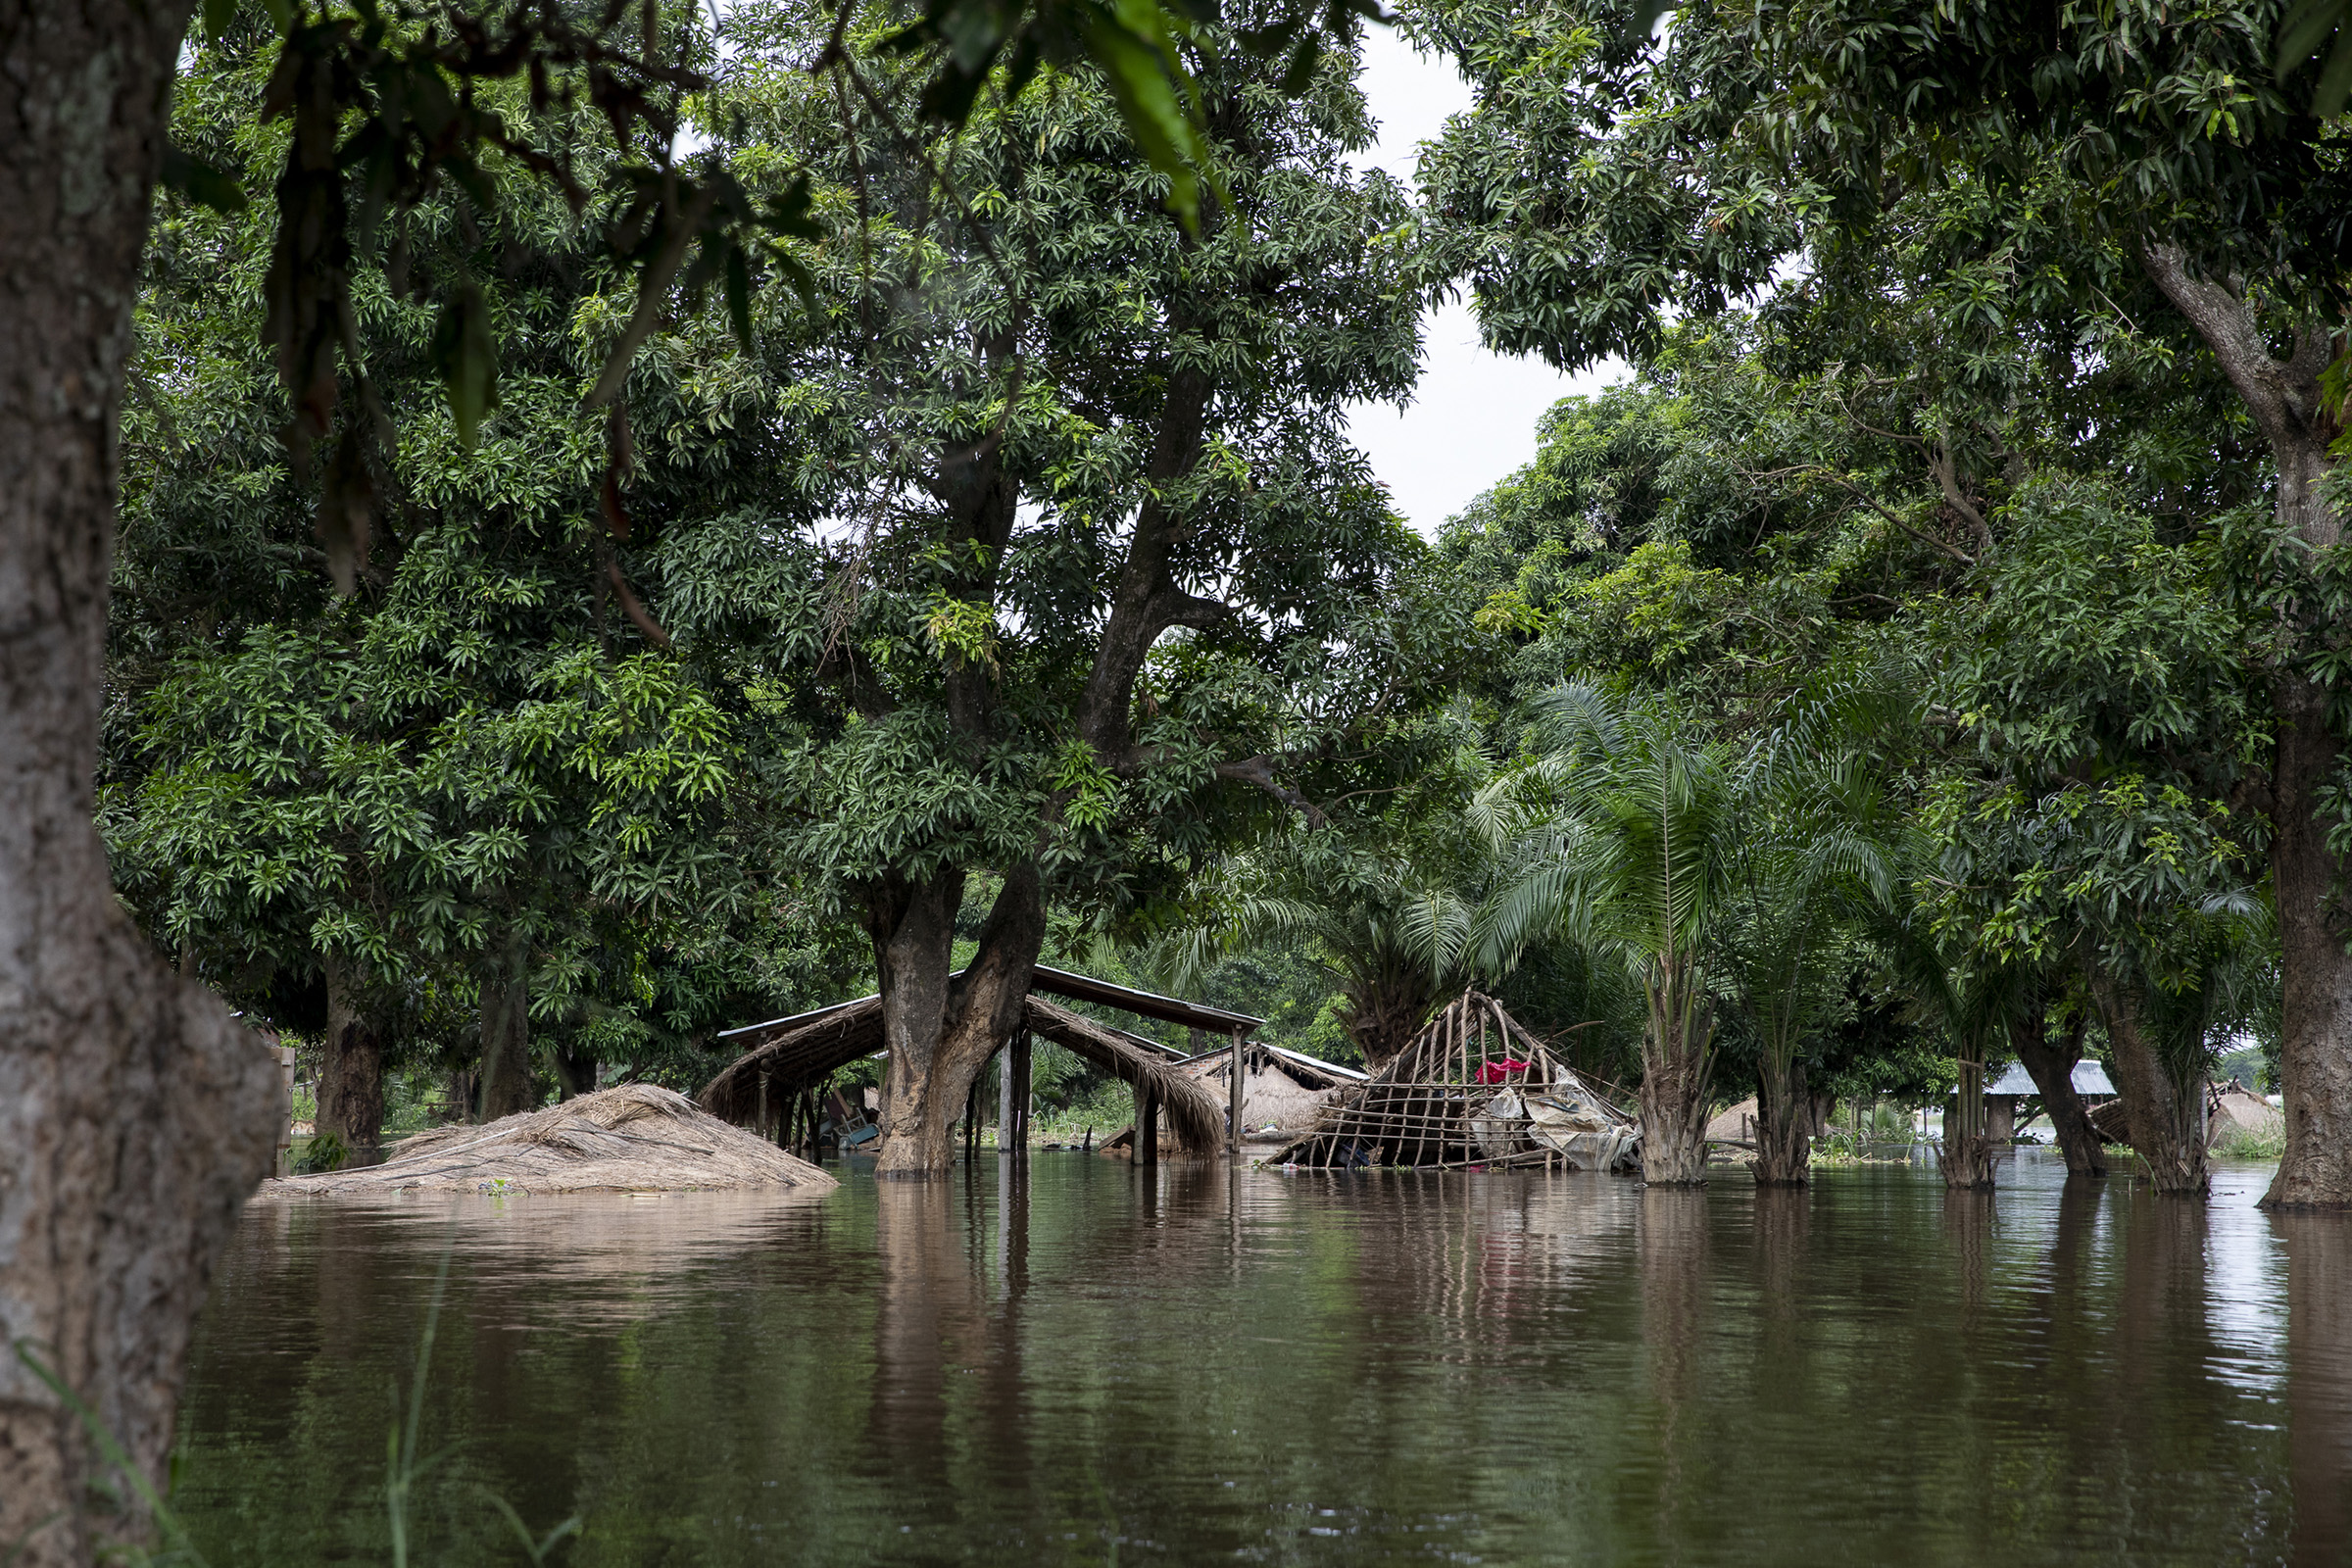 On Monkey Island, located in the middle of Ubangi River between the Democratic Republic of the Congo and the Central African Republic, almost all the houses fell to the floods, since they were made of mud-bricks. People fled during the night to the riverside.